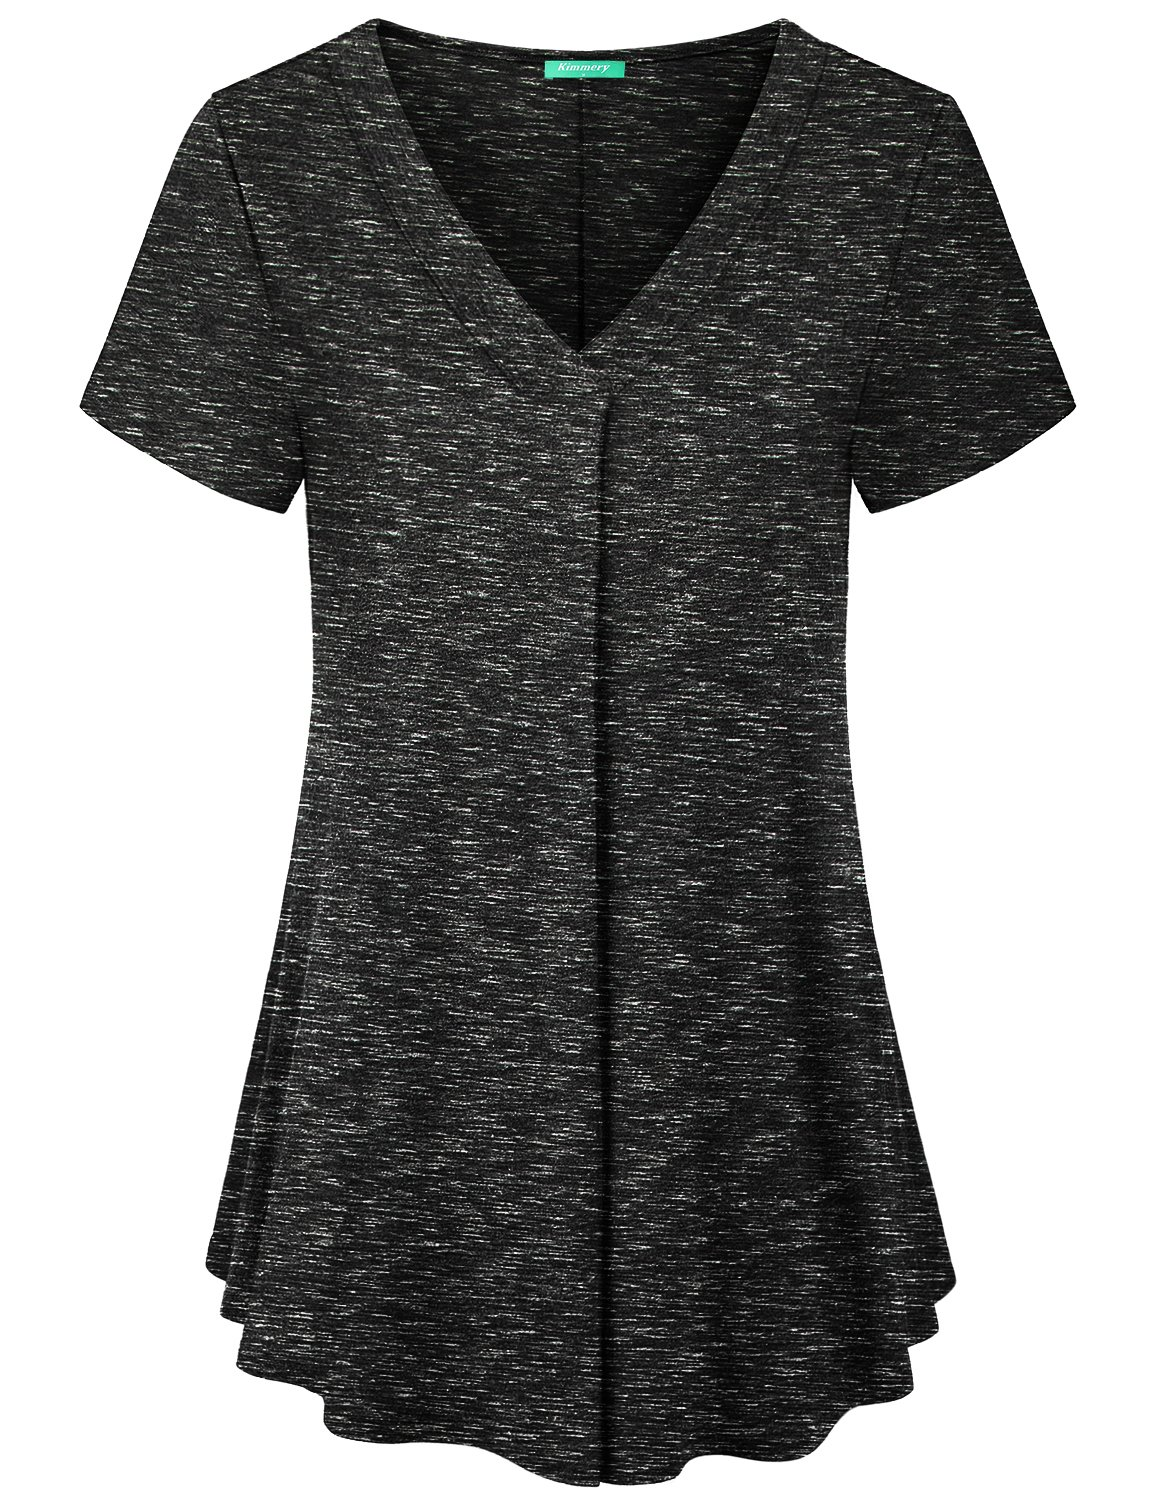 Kimmery Office Shirts for Women, Casual Jersey Blouses Short Sleeve Henley V Neck Flared Hem Pleating Tops Loose Fitting Boutique Clothing Delicate Well Made Trapeze Tunics Space Dye Black X Large.